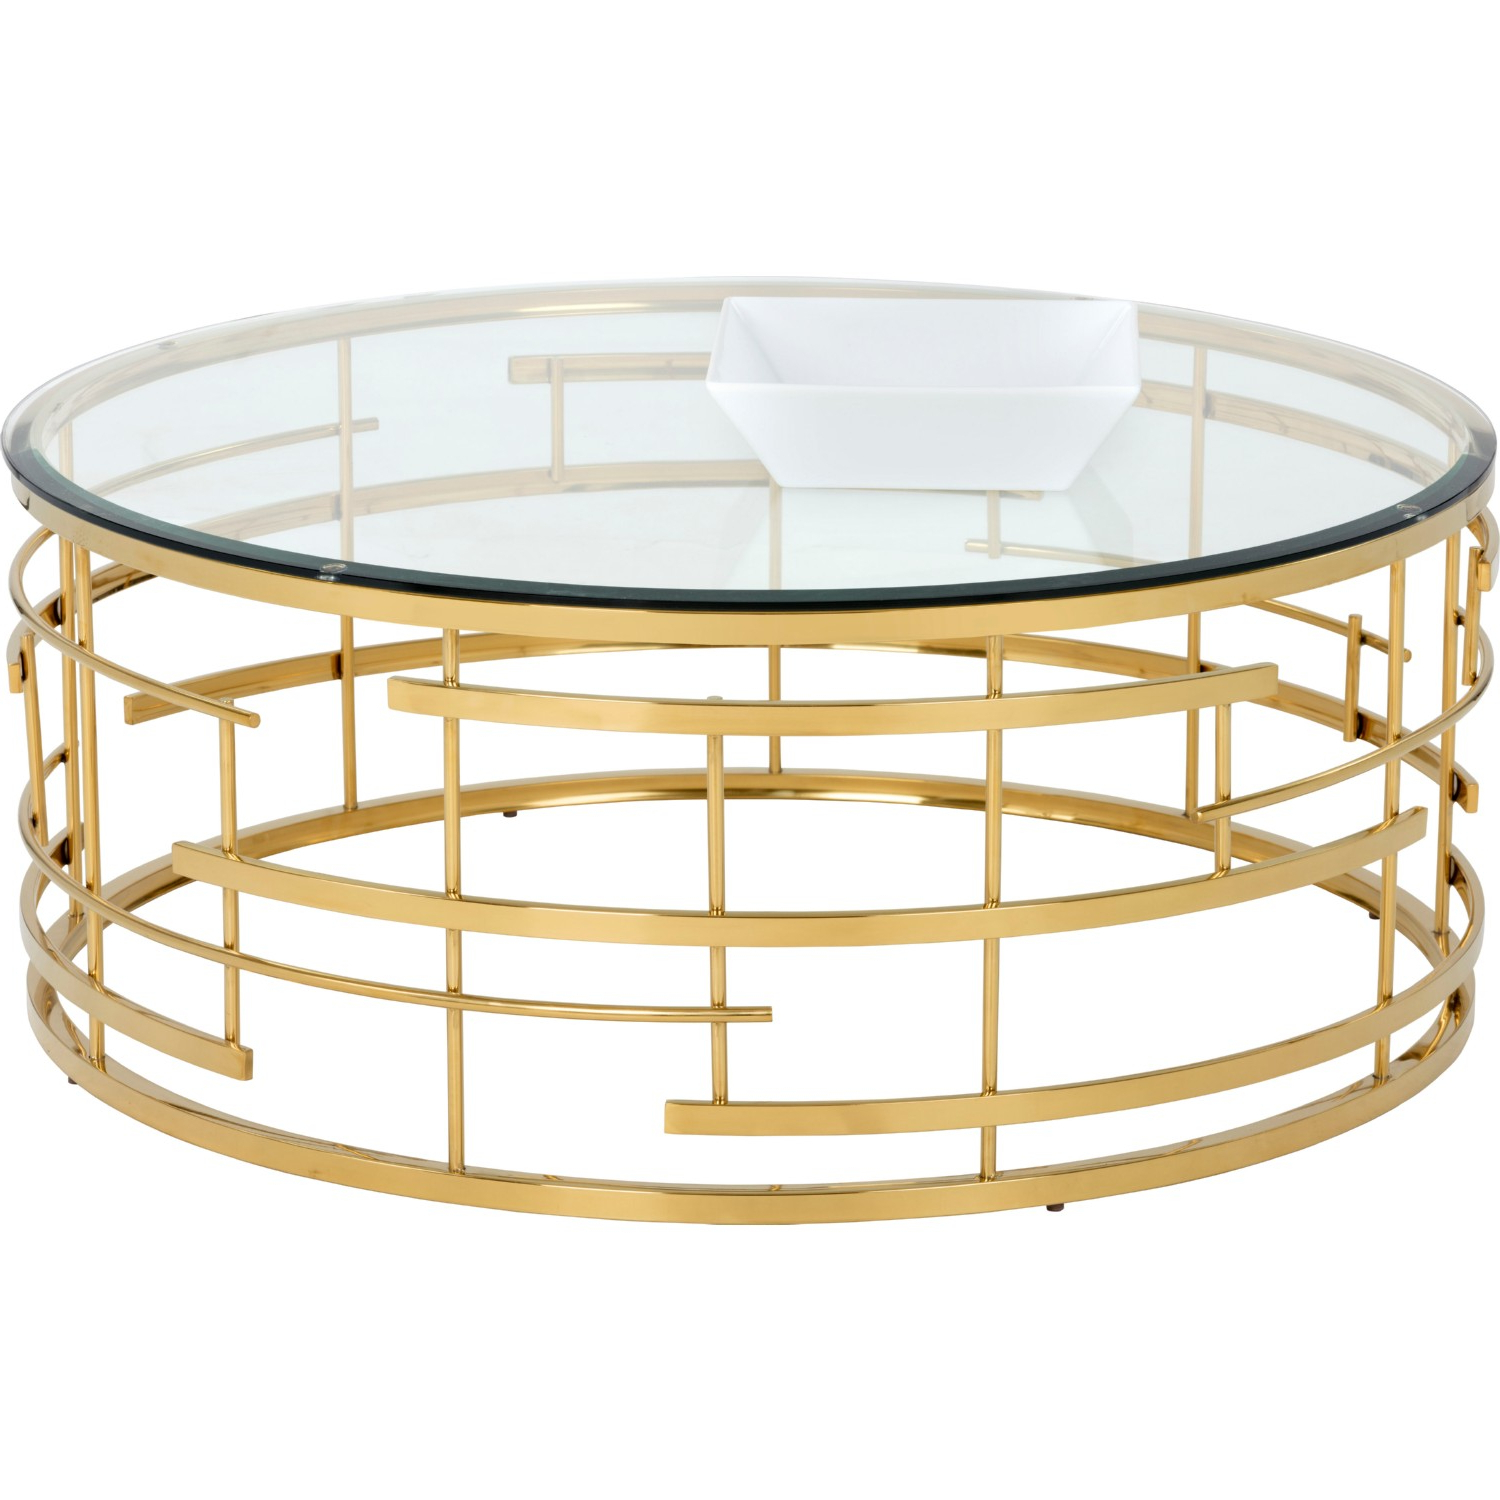 Well Liked Madison Park Susie Coffee Tables 2 Color Option In Sunpan Cielo Coffee Table Round Glass Top On Gold Metal Base (View 19 of 20)